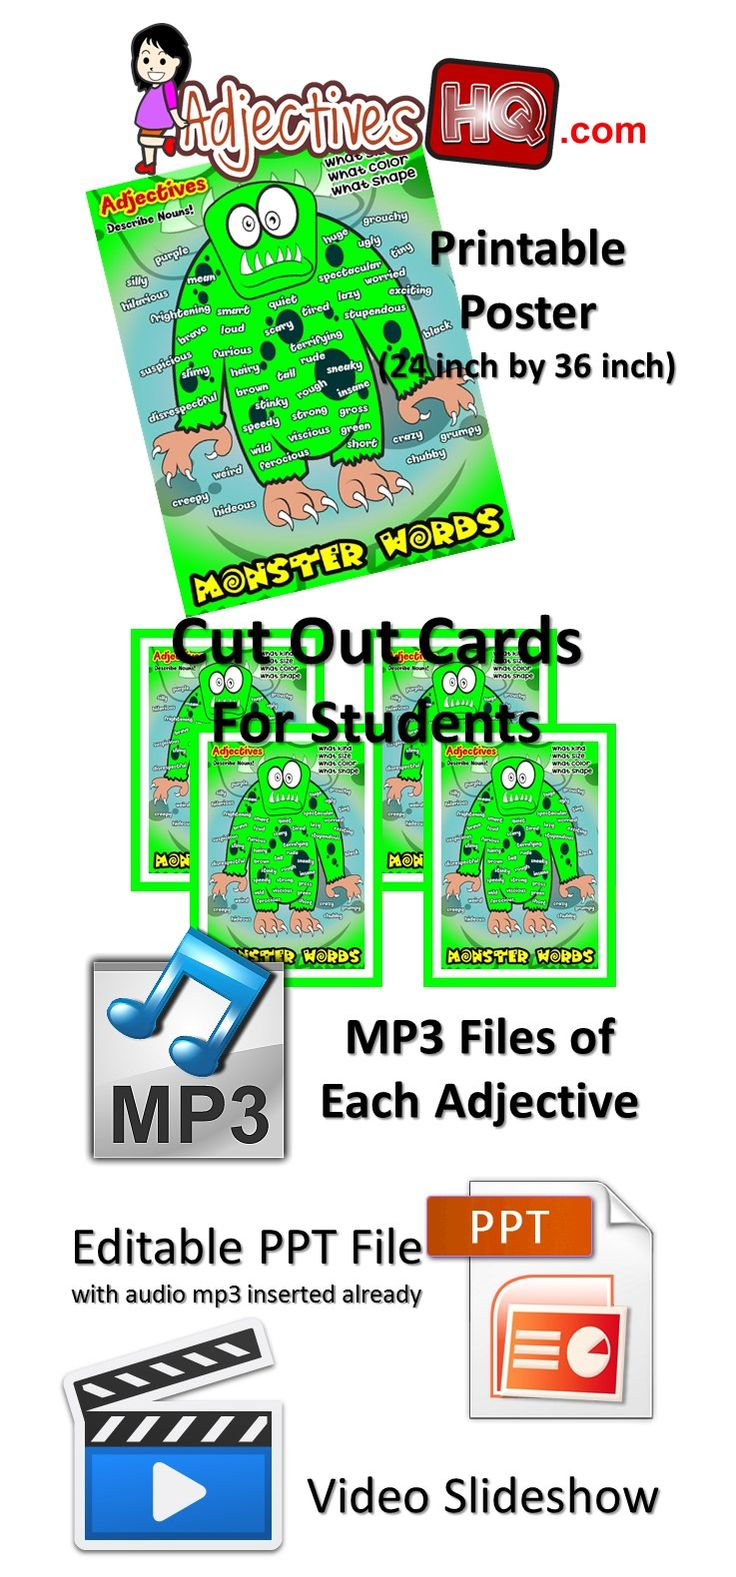 Monster Words Adjective Poster https://www.teacherspayteachers.com/Product/Monster-Words-Adjective-Poster-1959078  #adjectives